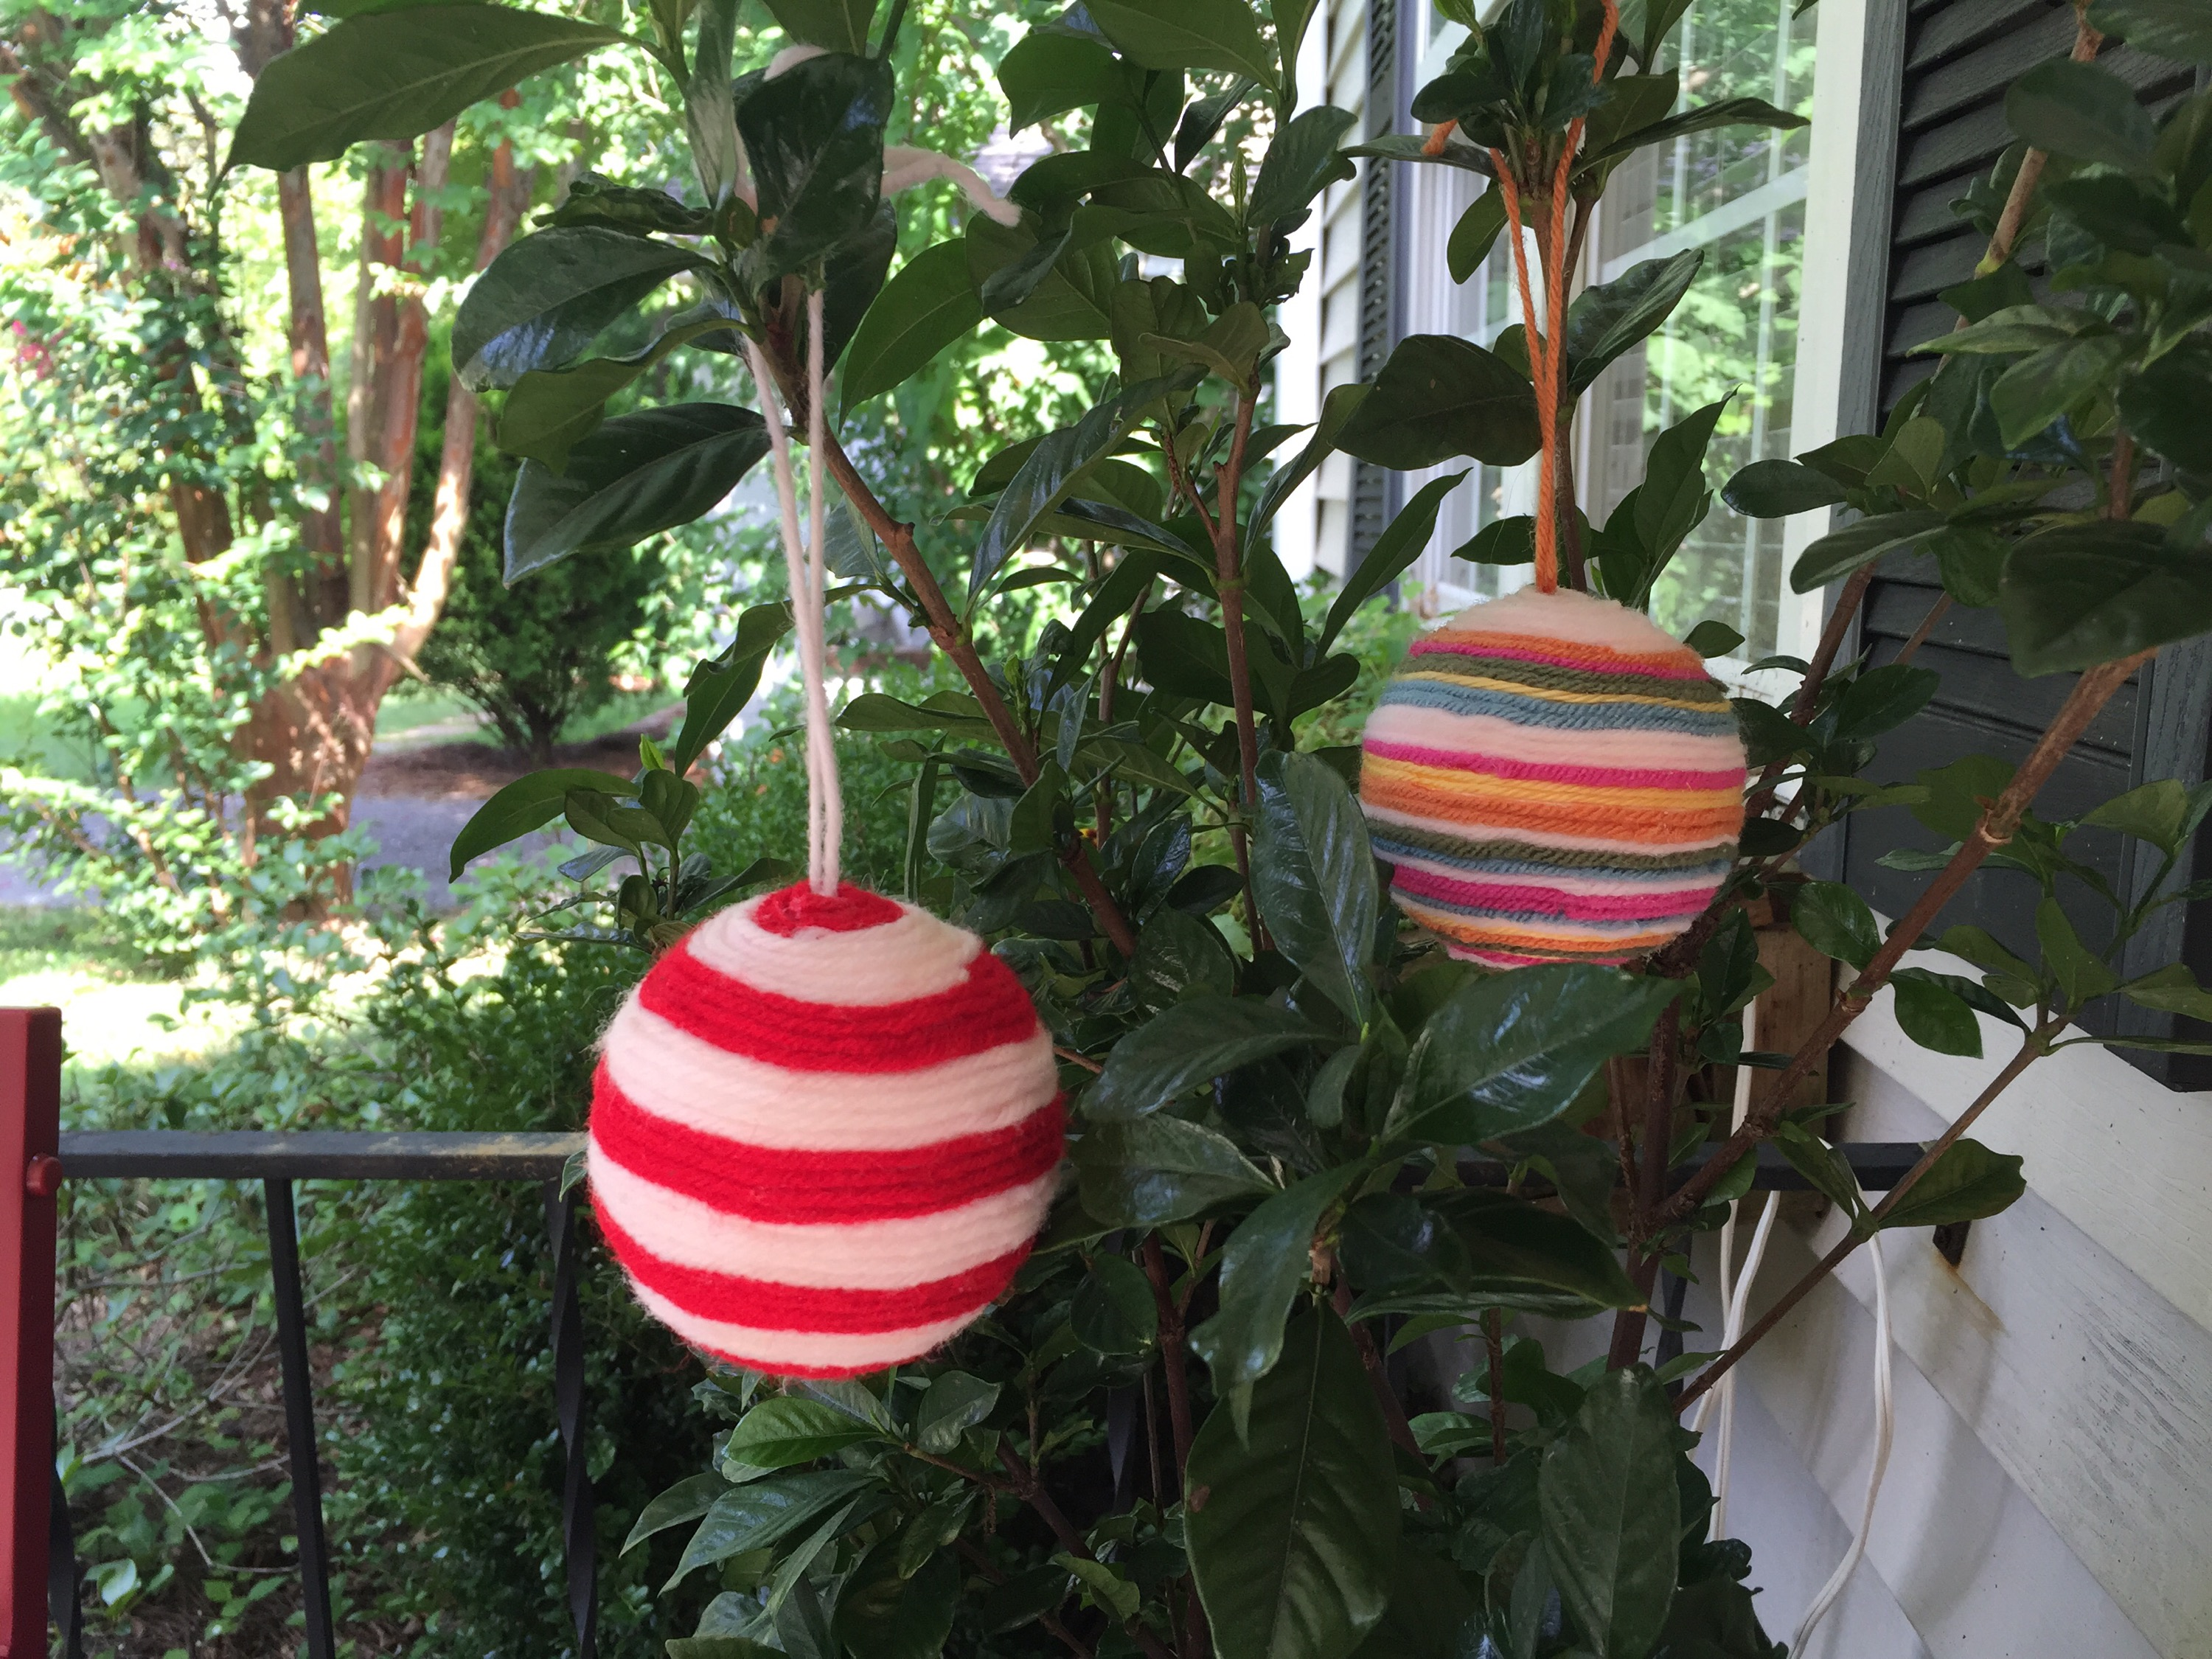 Styrofoam christmas ornaments - I Had All Of The Materials To Make This Project Because I Had Purchased The Styrofoam Balls Last December Alas You Can Only Do So Many Christmas Crafts